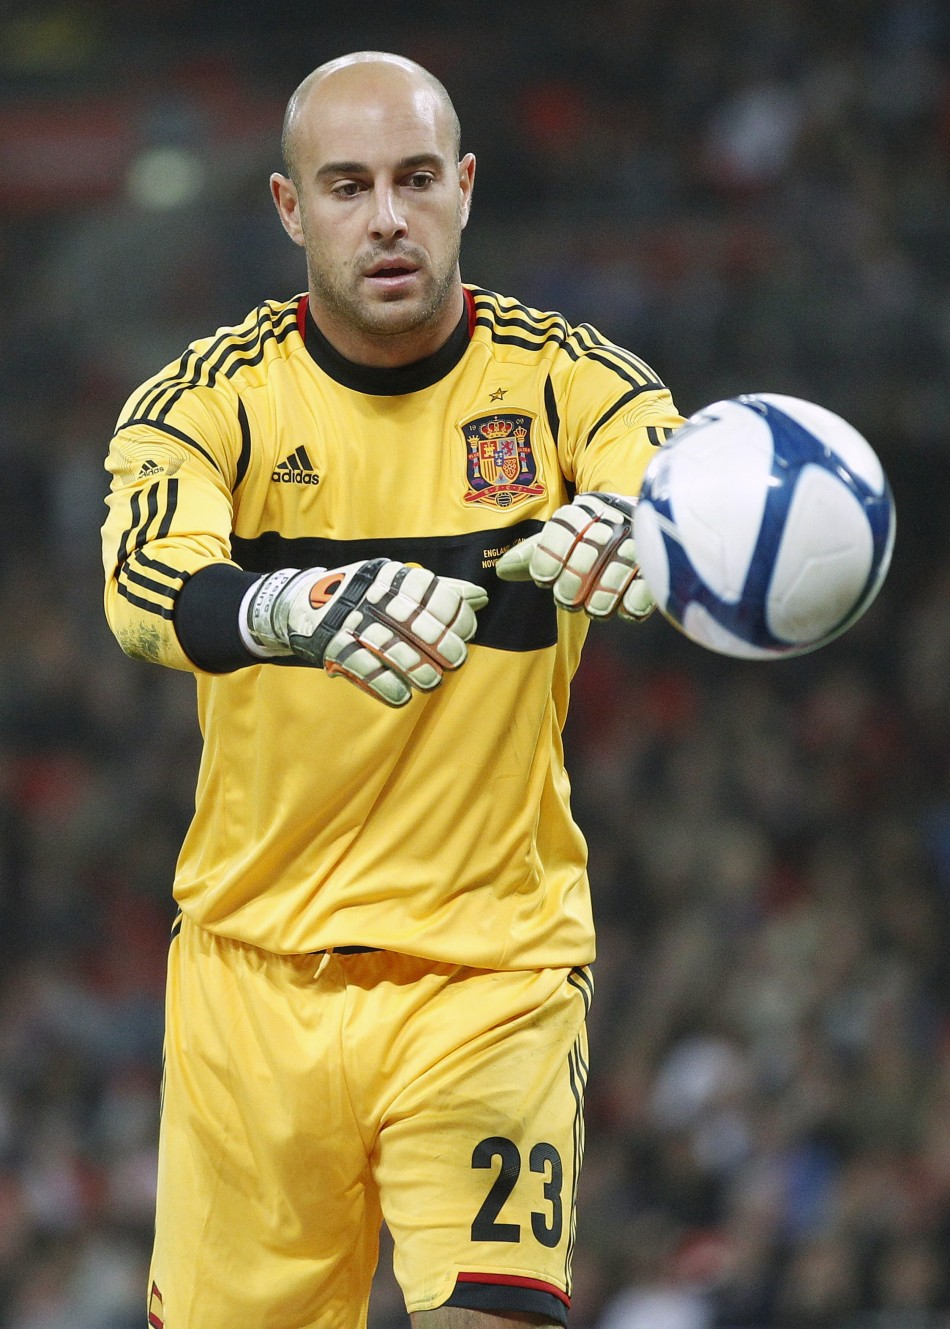 Spains Reina catches the ball during their international friendly soccer match against England at Wembley Stadium in London